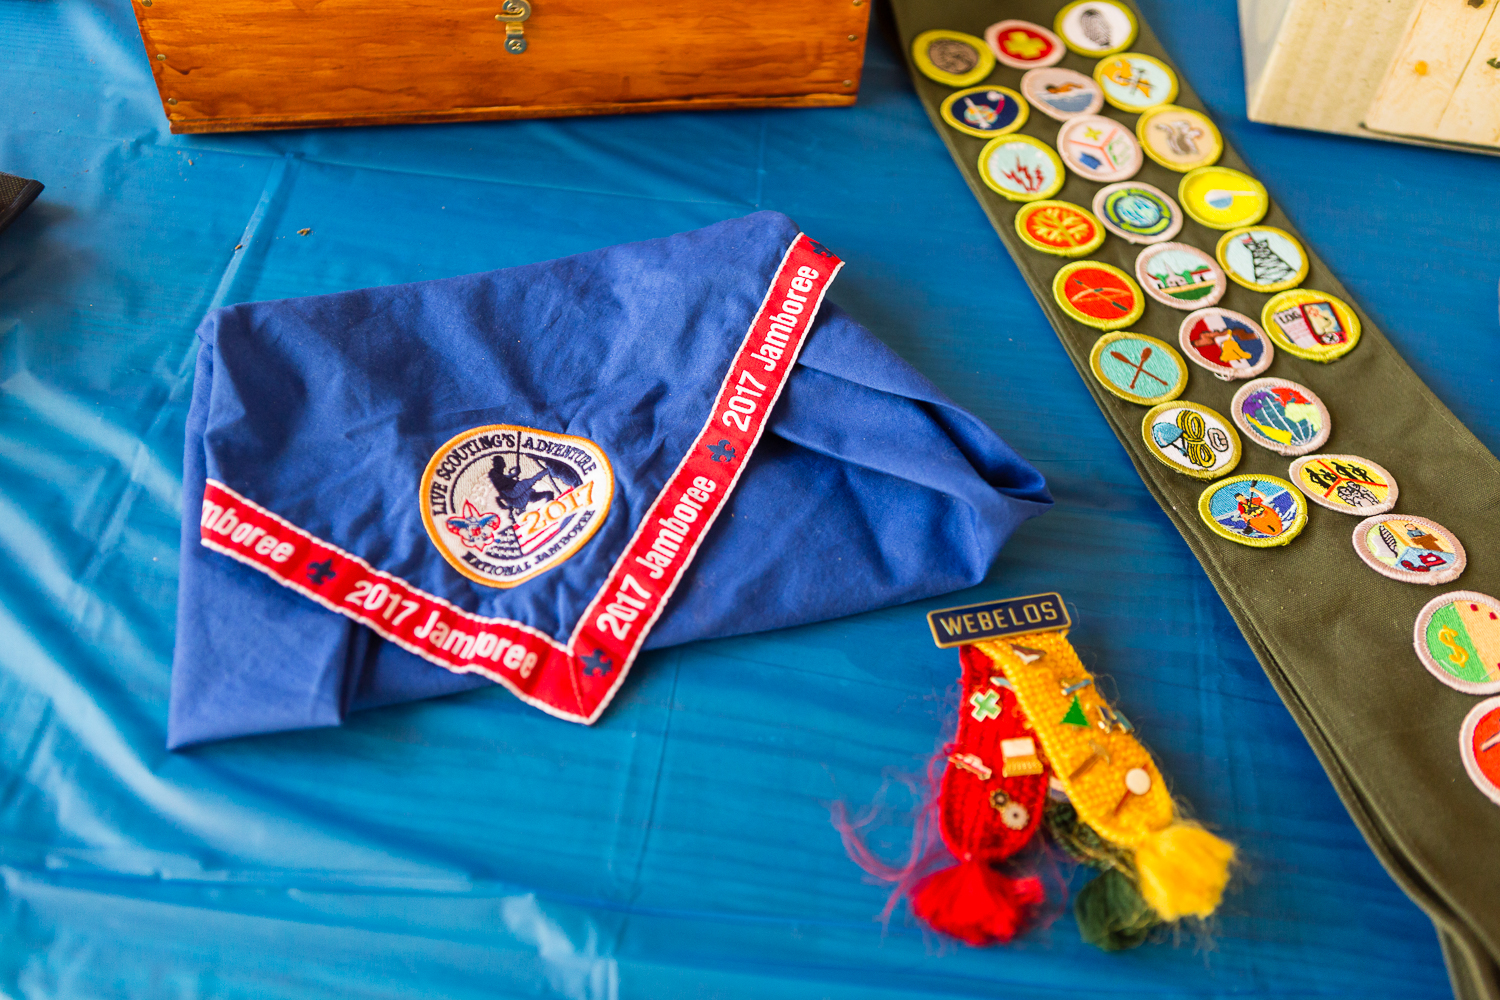 eagle-scout-ceremony-01.jpg